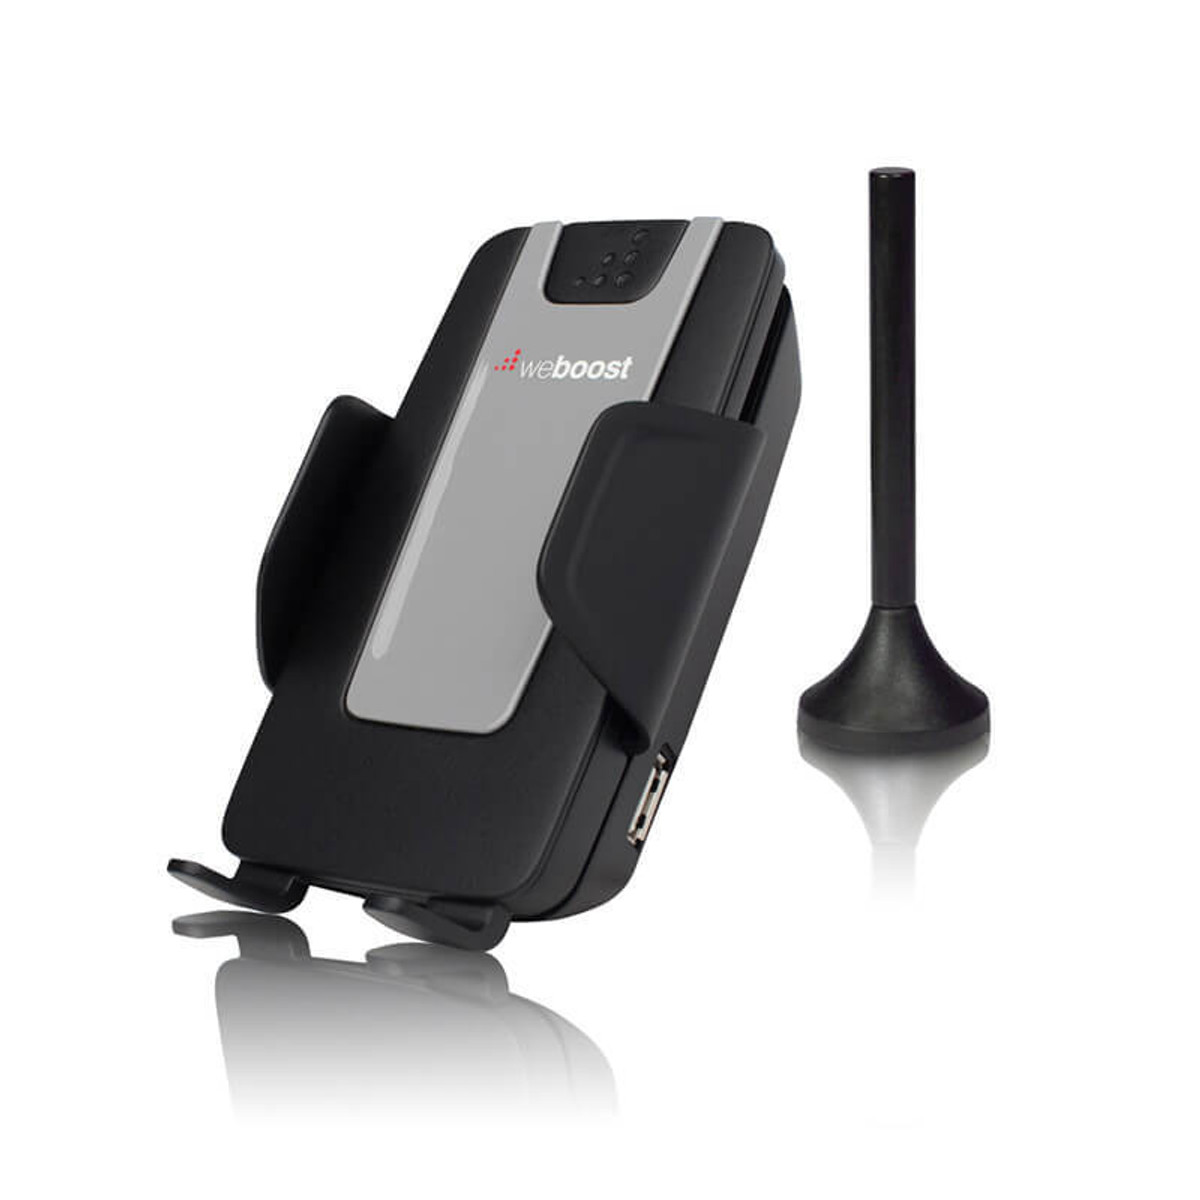 weBoost Drive 3G-S Cell Phone Signal Booster | 470106 Amplifier and Antenna